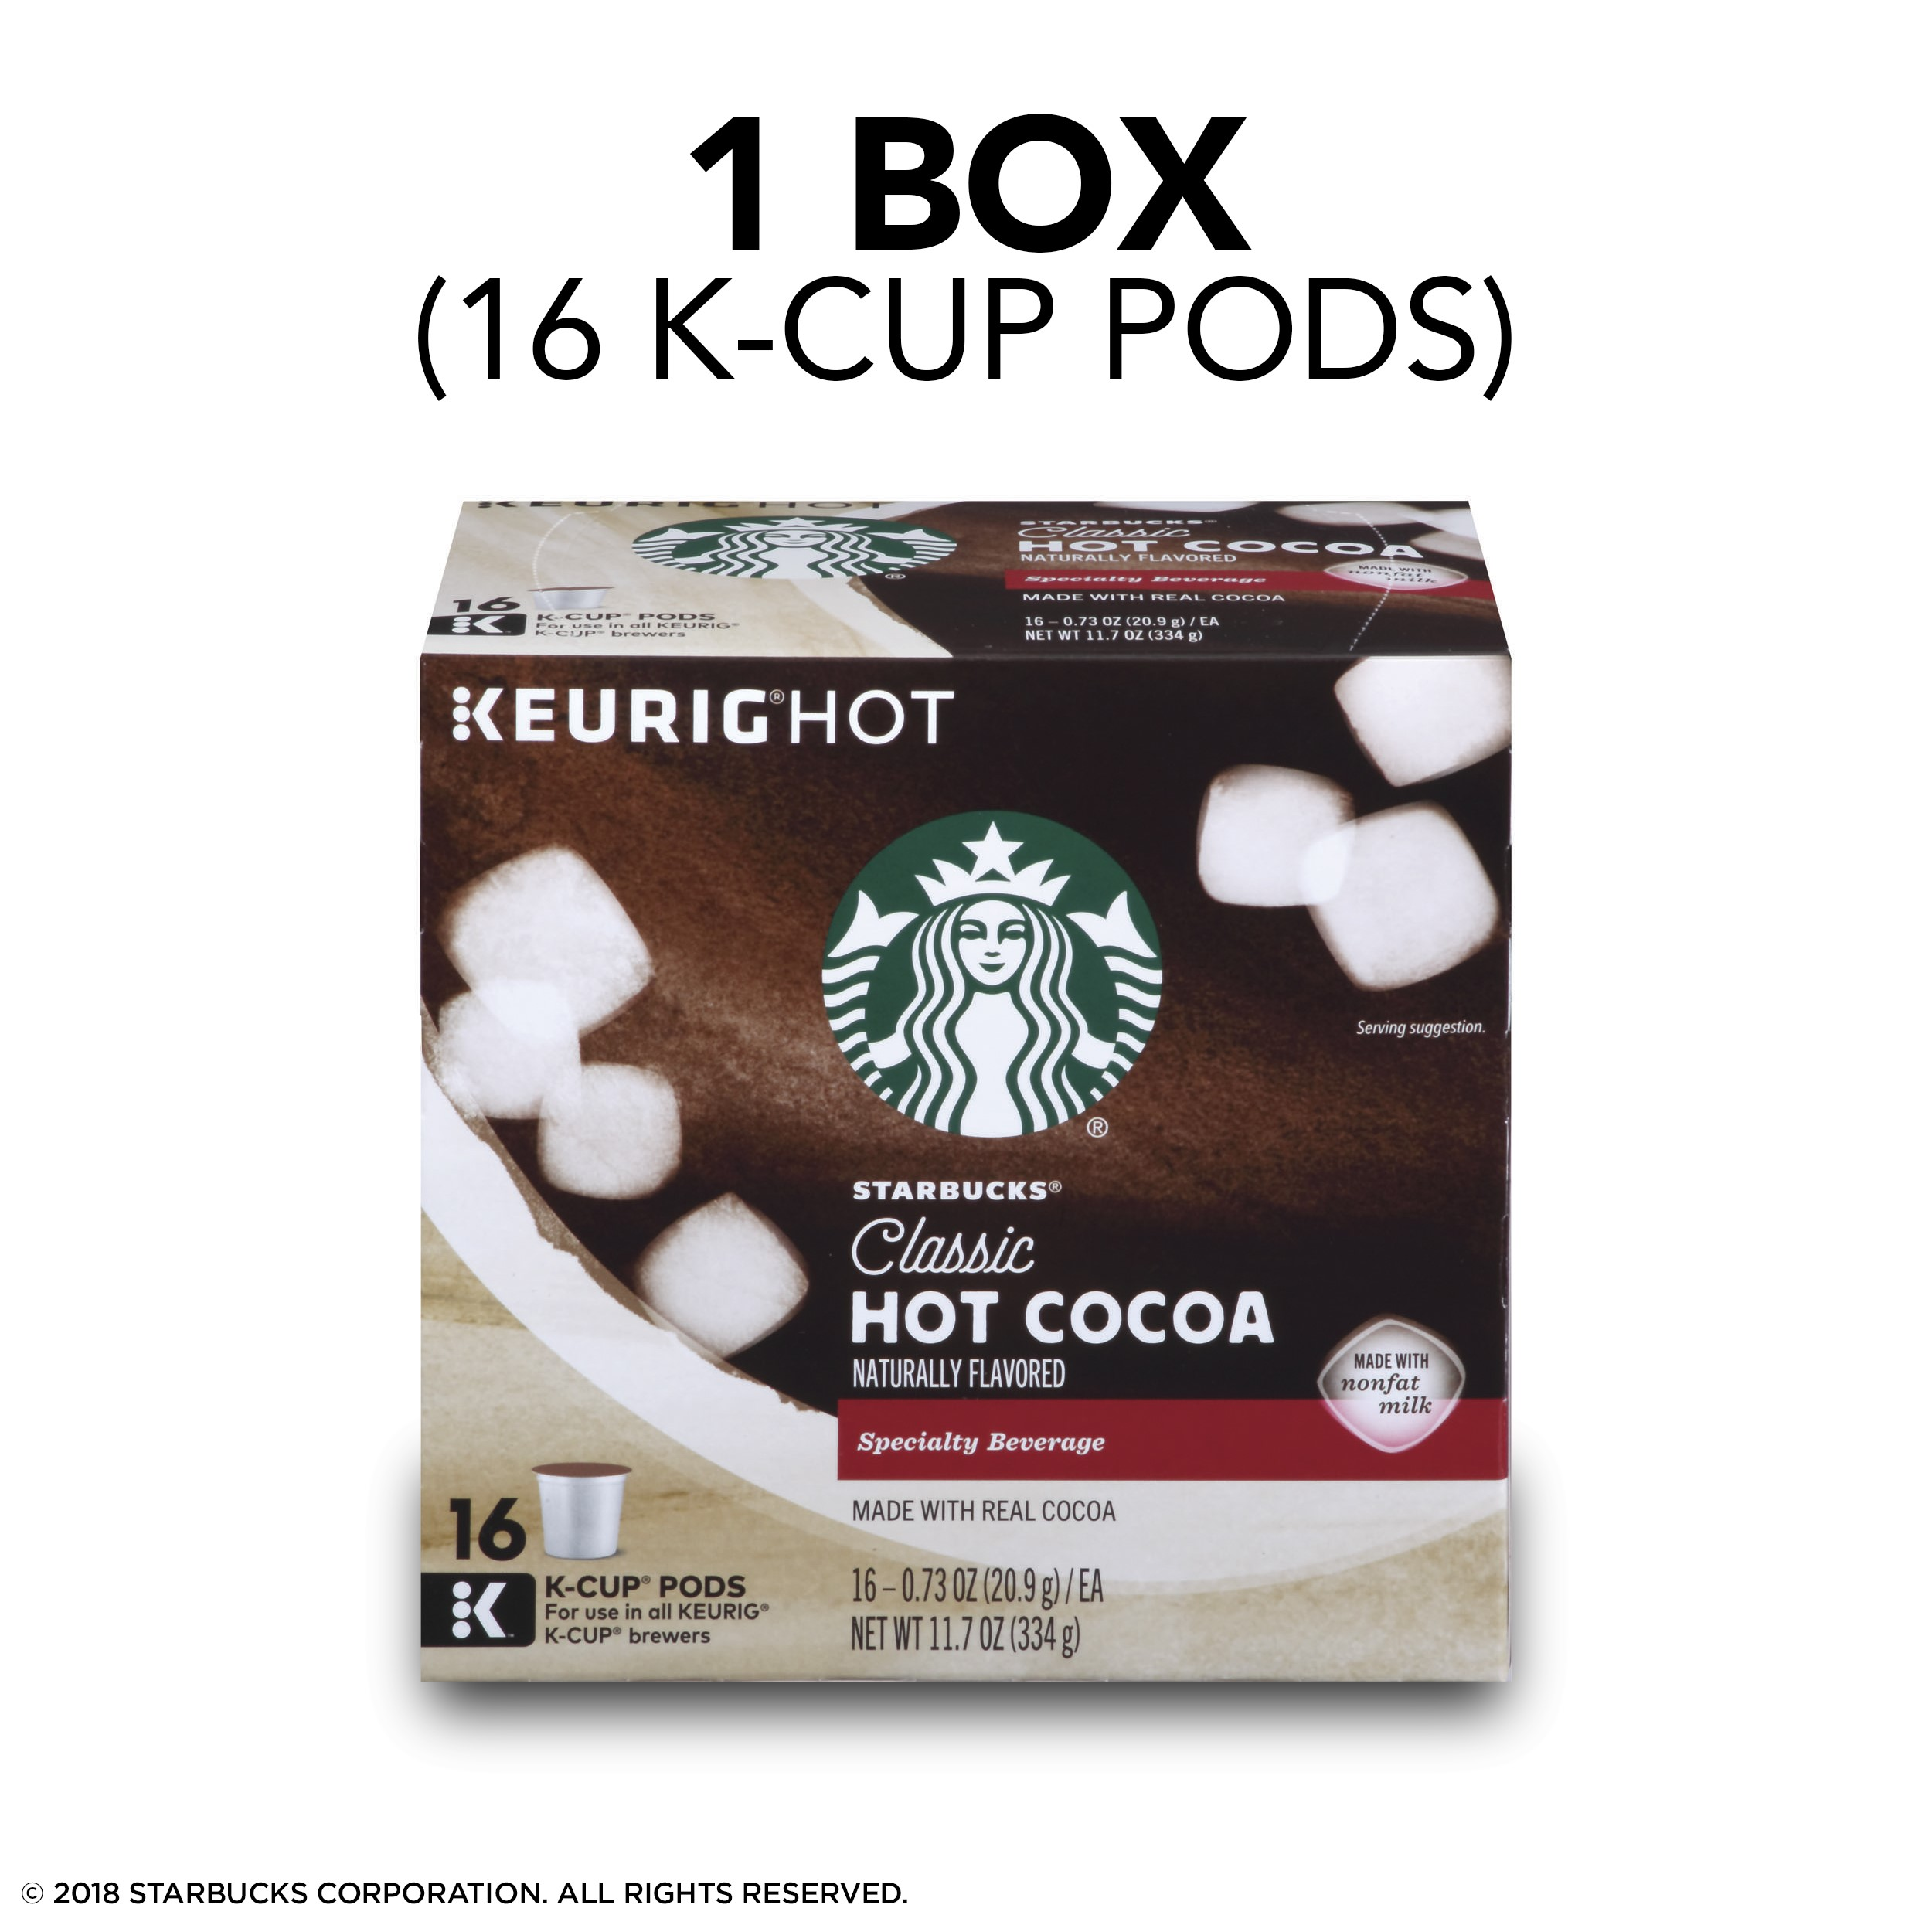 Starbucks Classic Hot Cocoa Single Serve Pods For Keurig Brewers Box Of 16 16 Total K Cup Pods